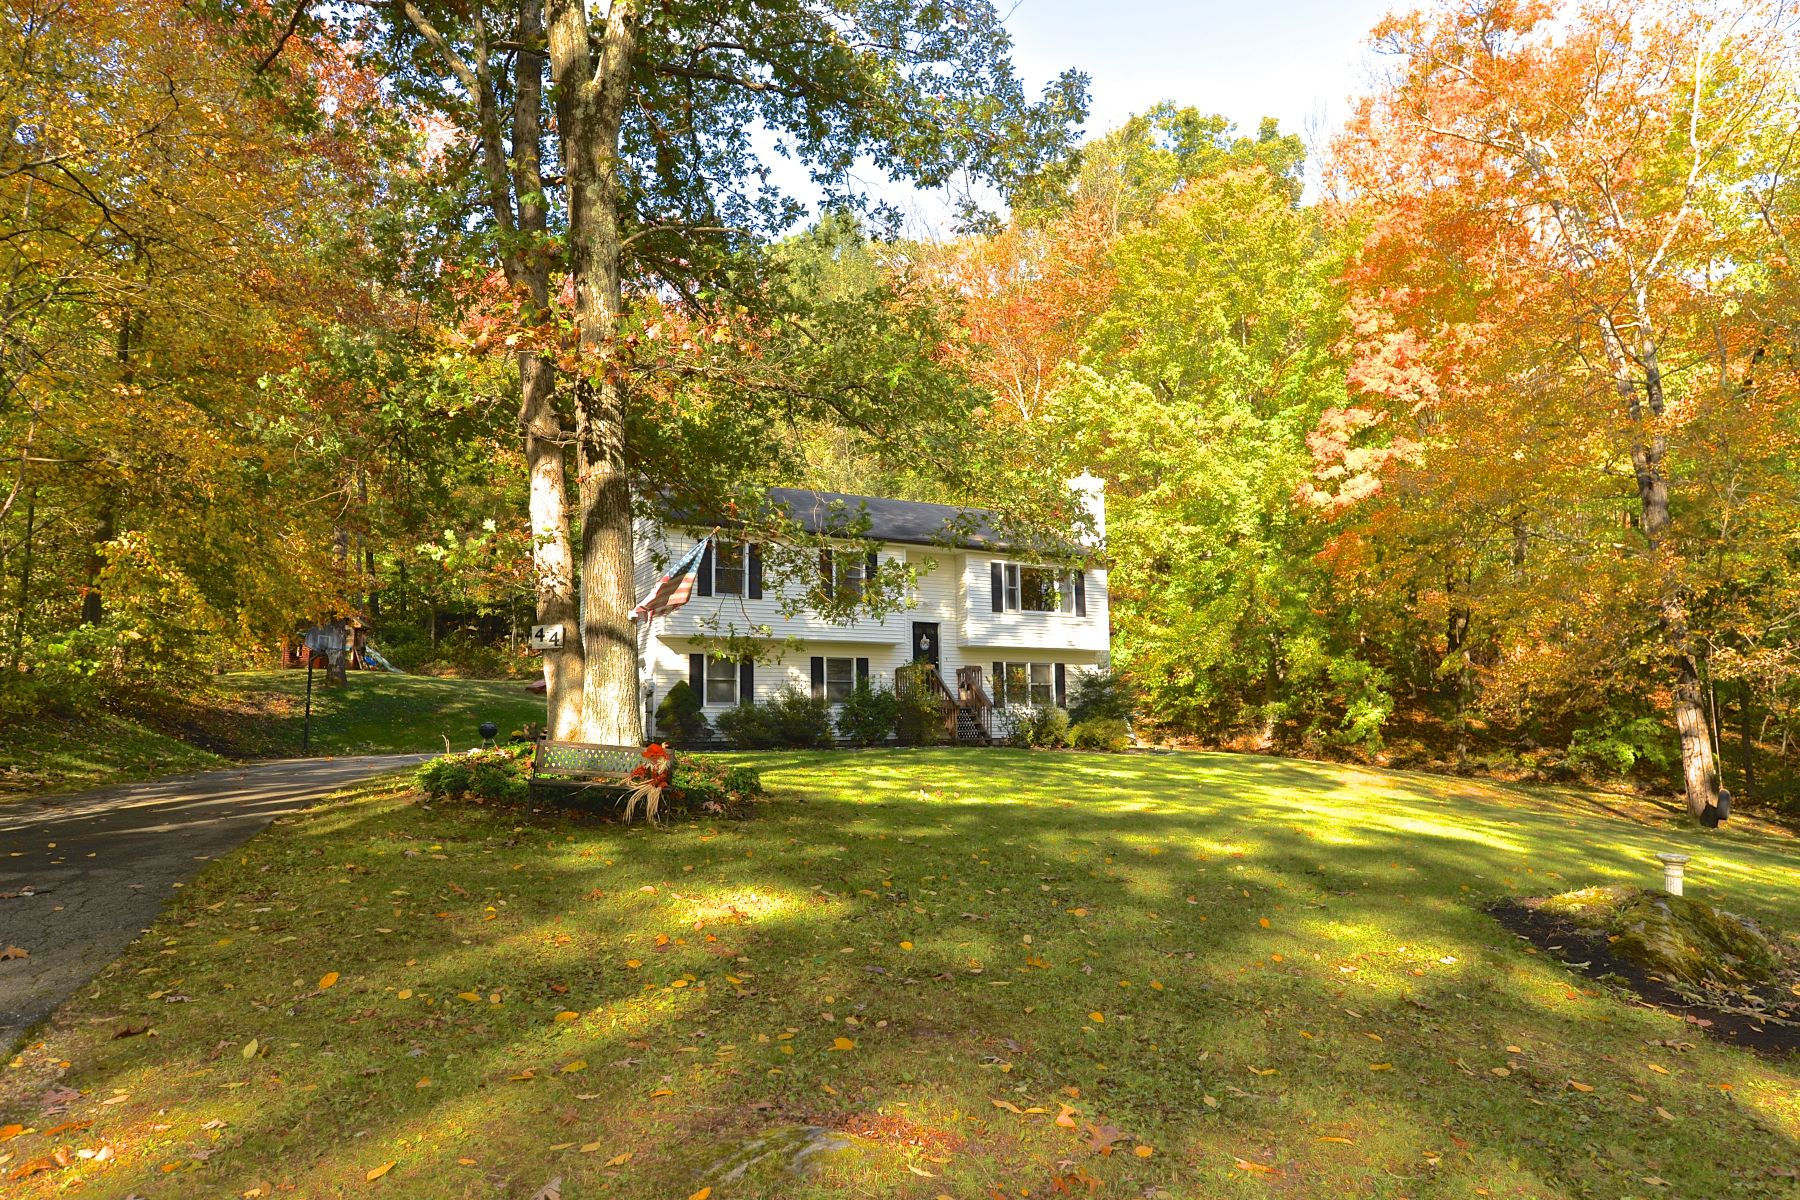 Single Family Homes for Sale at Private Level Lot 44 Aspetuck Pines Dr New Milford, Connecticut 06776 United States